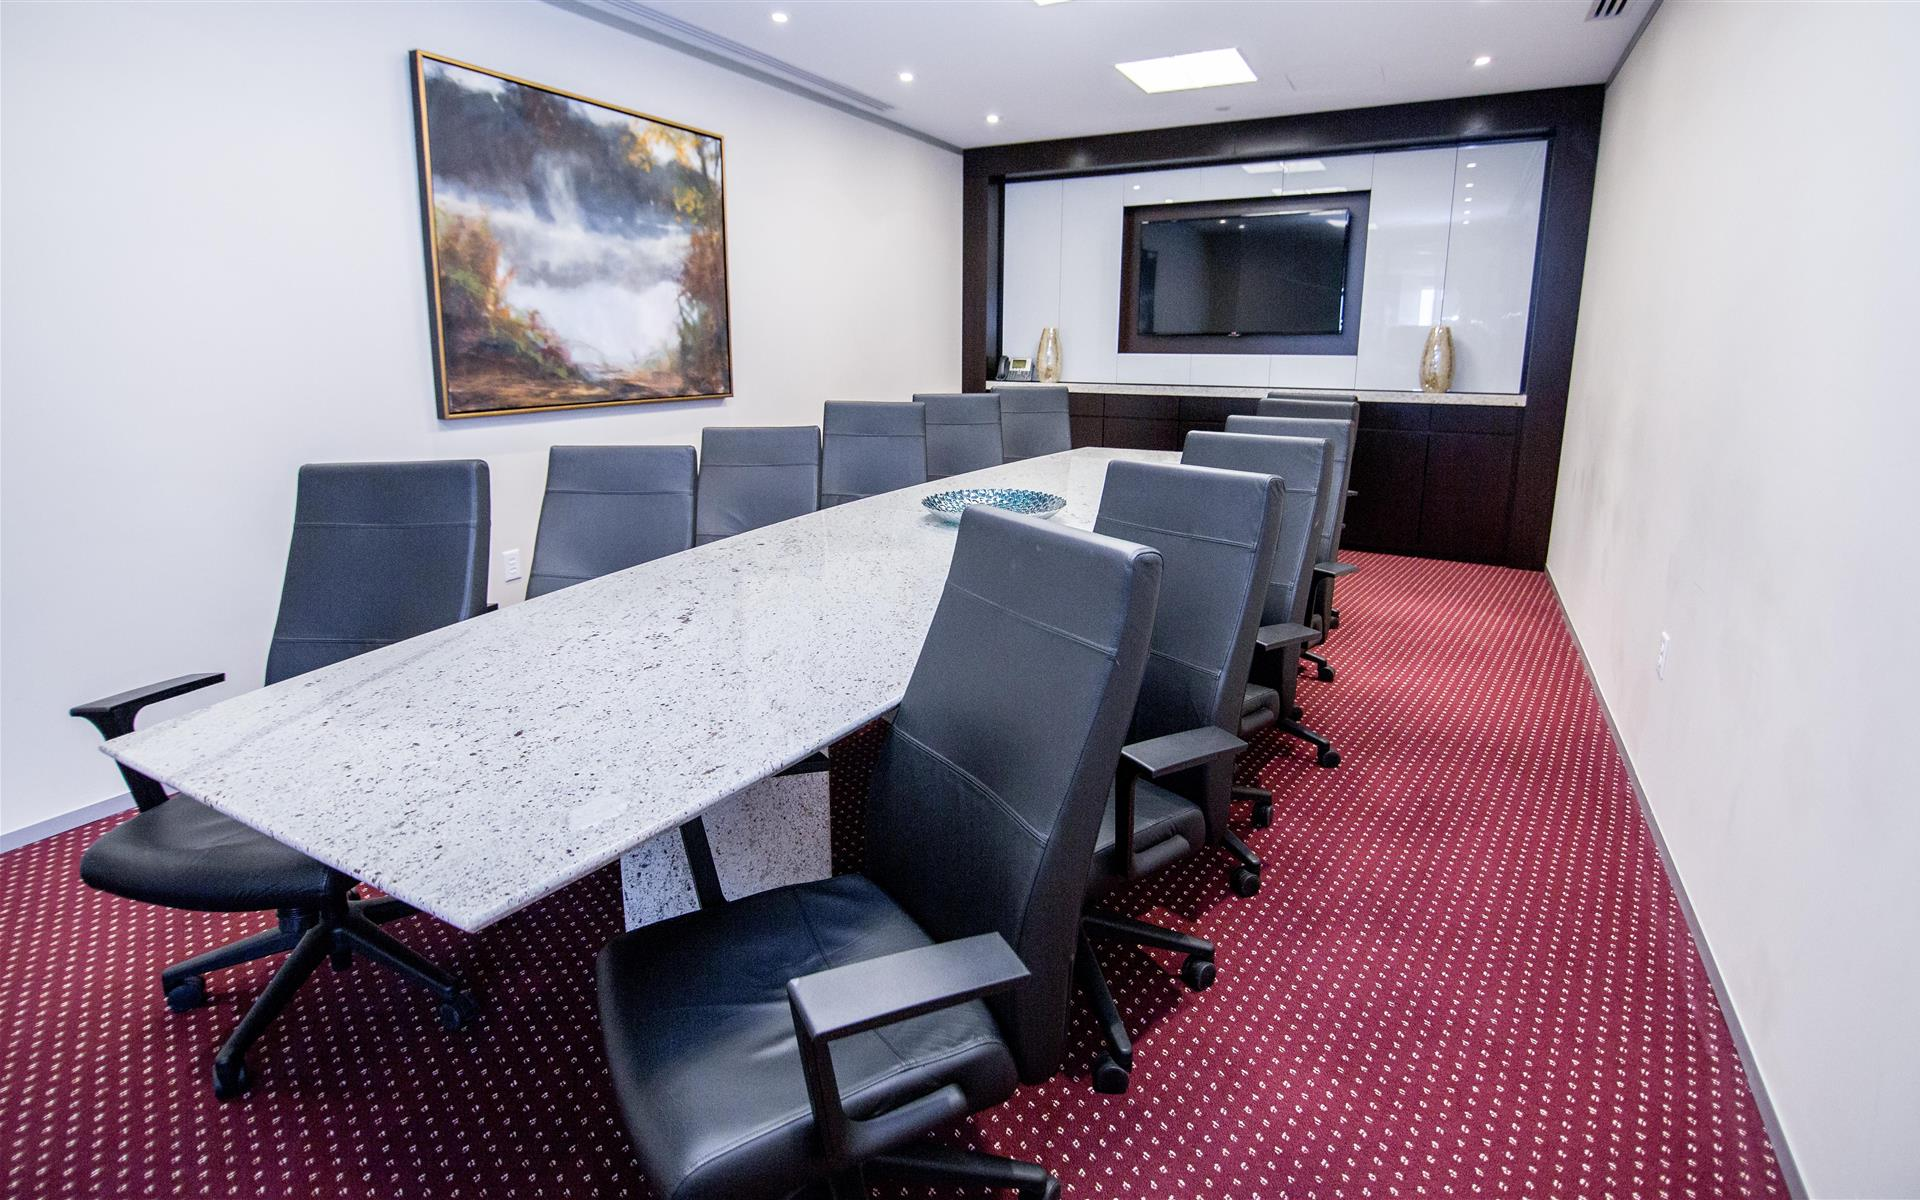 Servcorp - Boston One International Place - Executive Boardroom 14 people